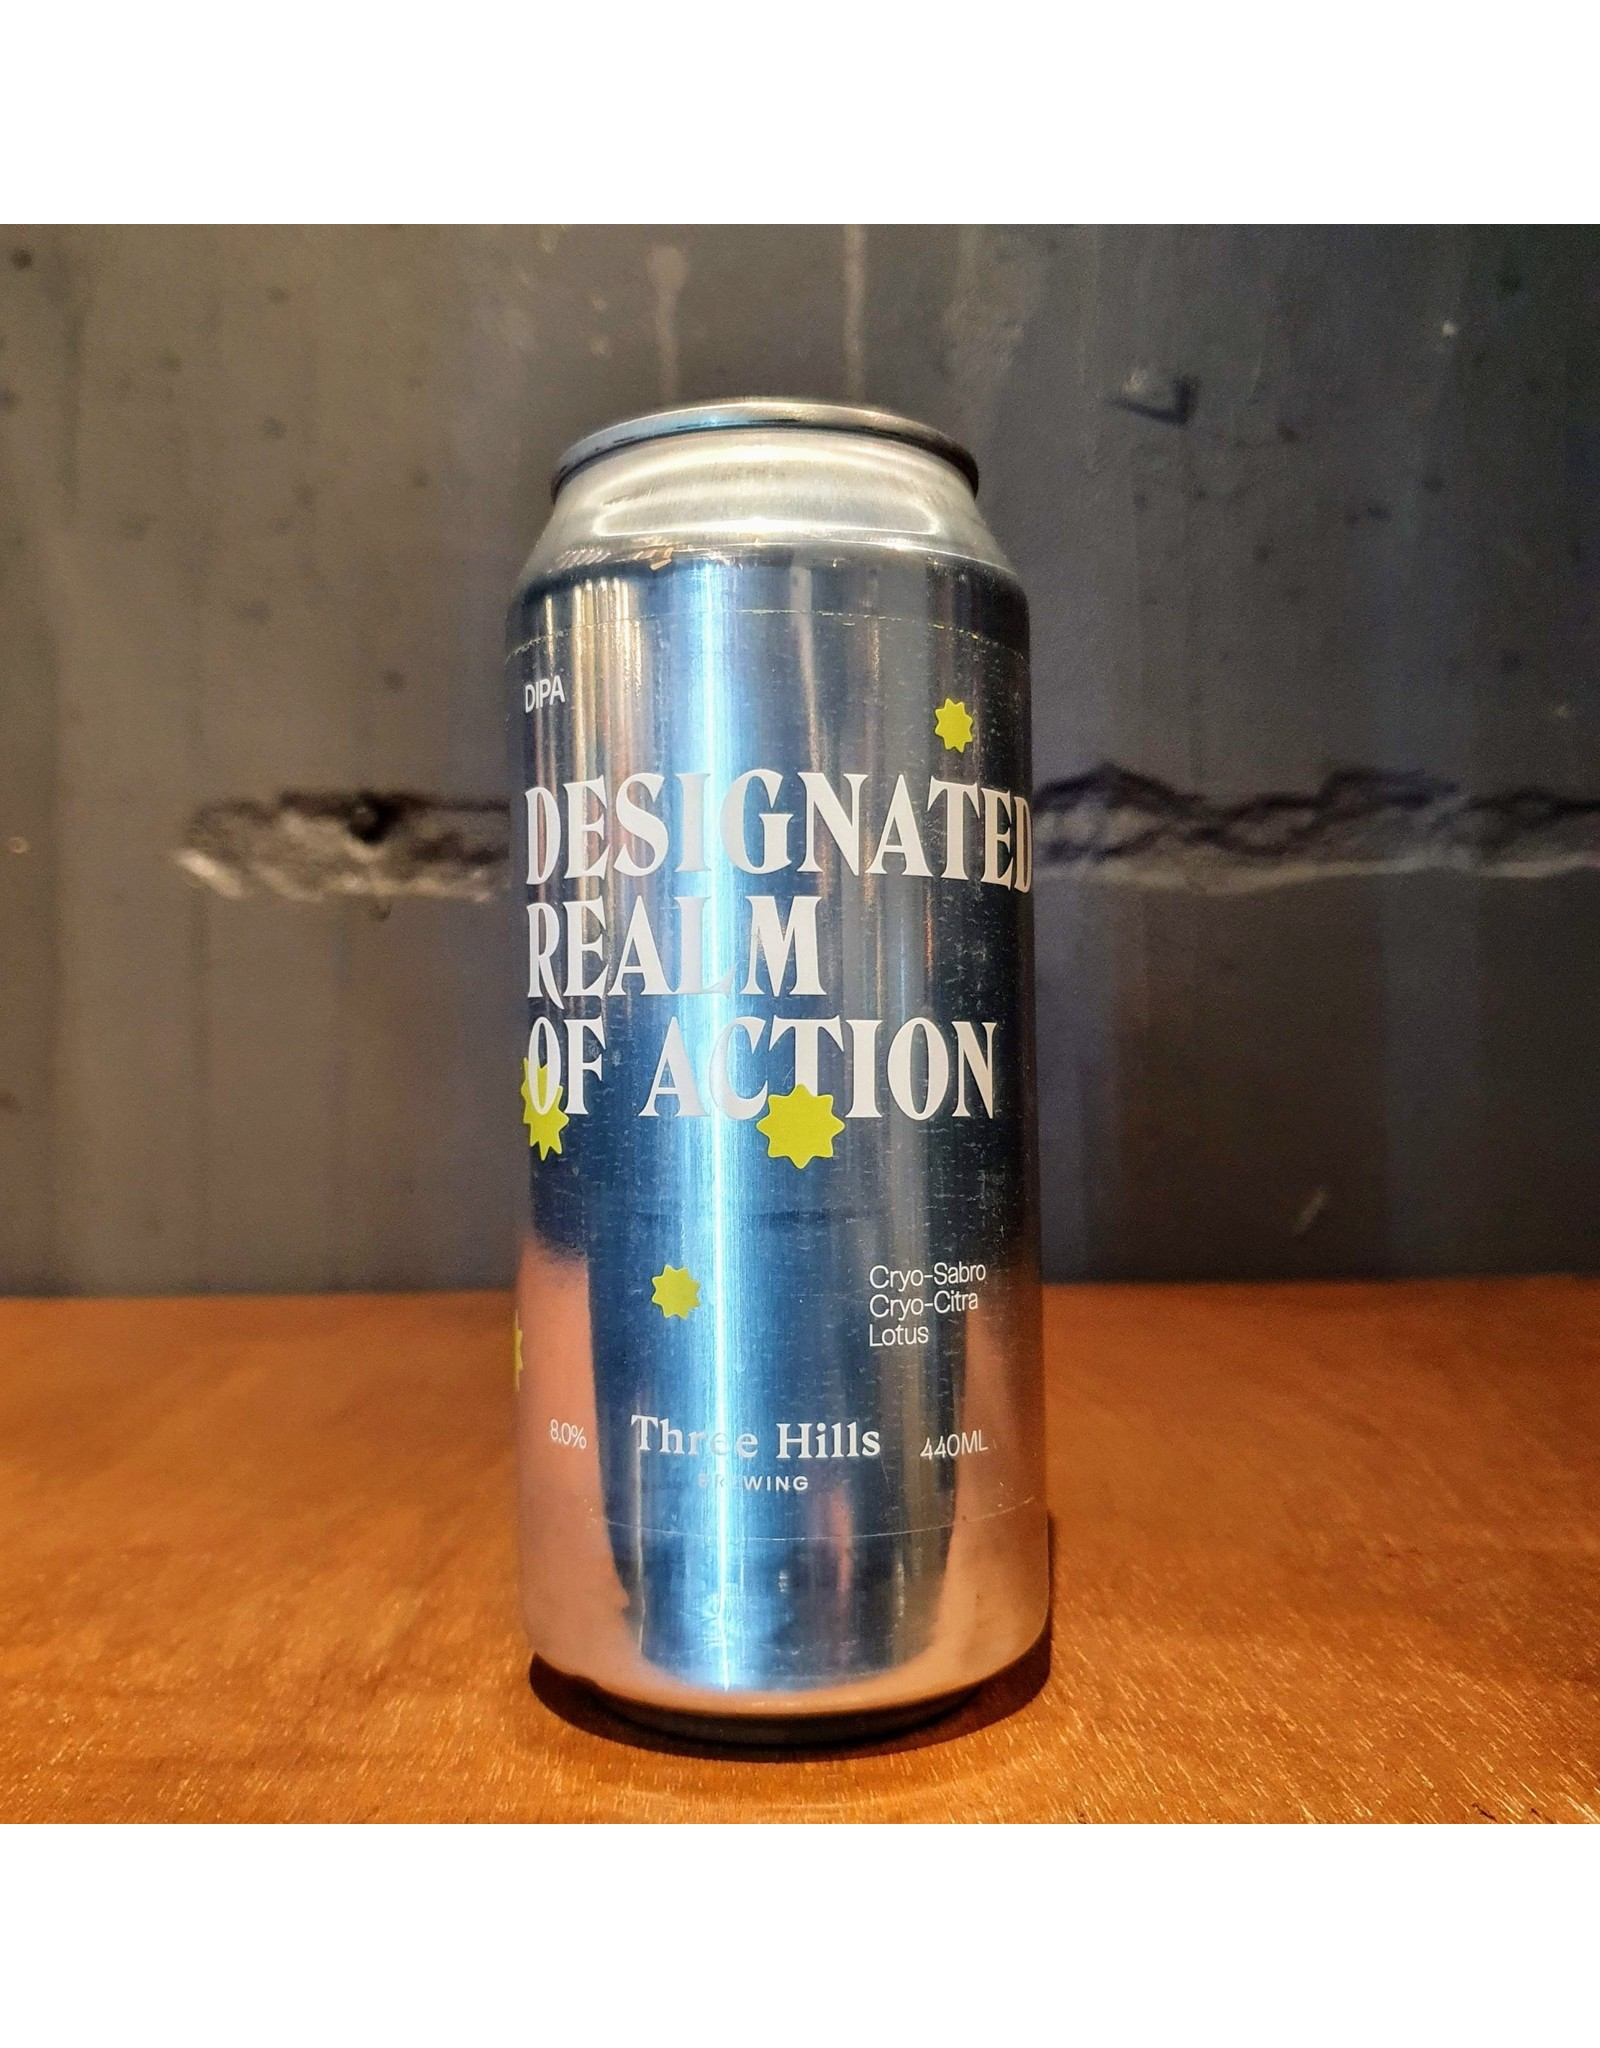 three hills Three Hills: Designated Realm of Action DIPA